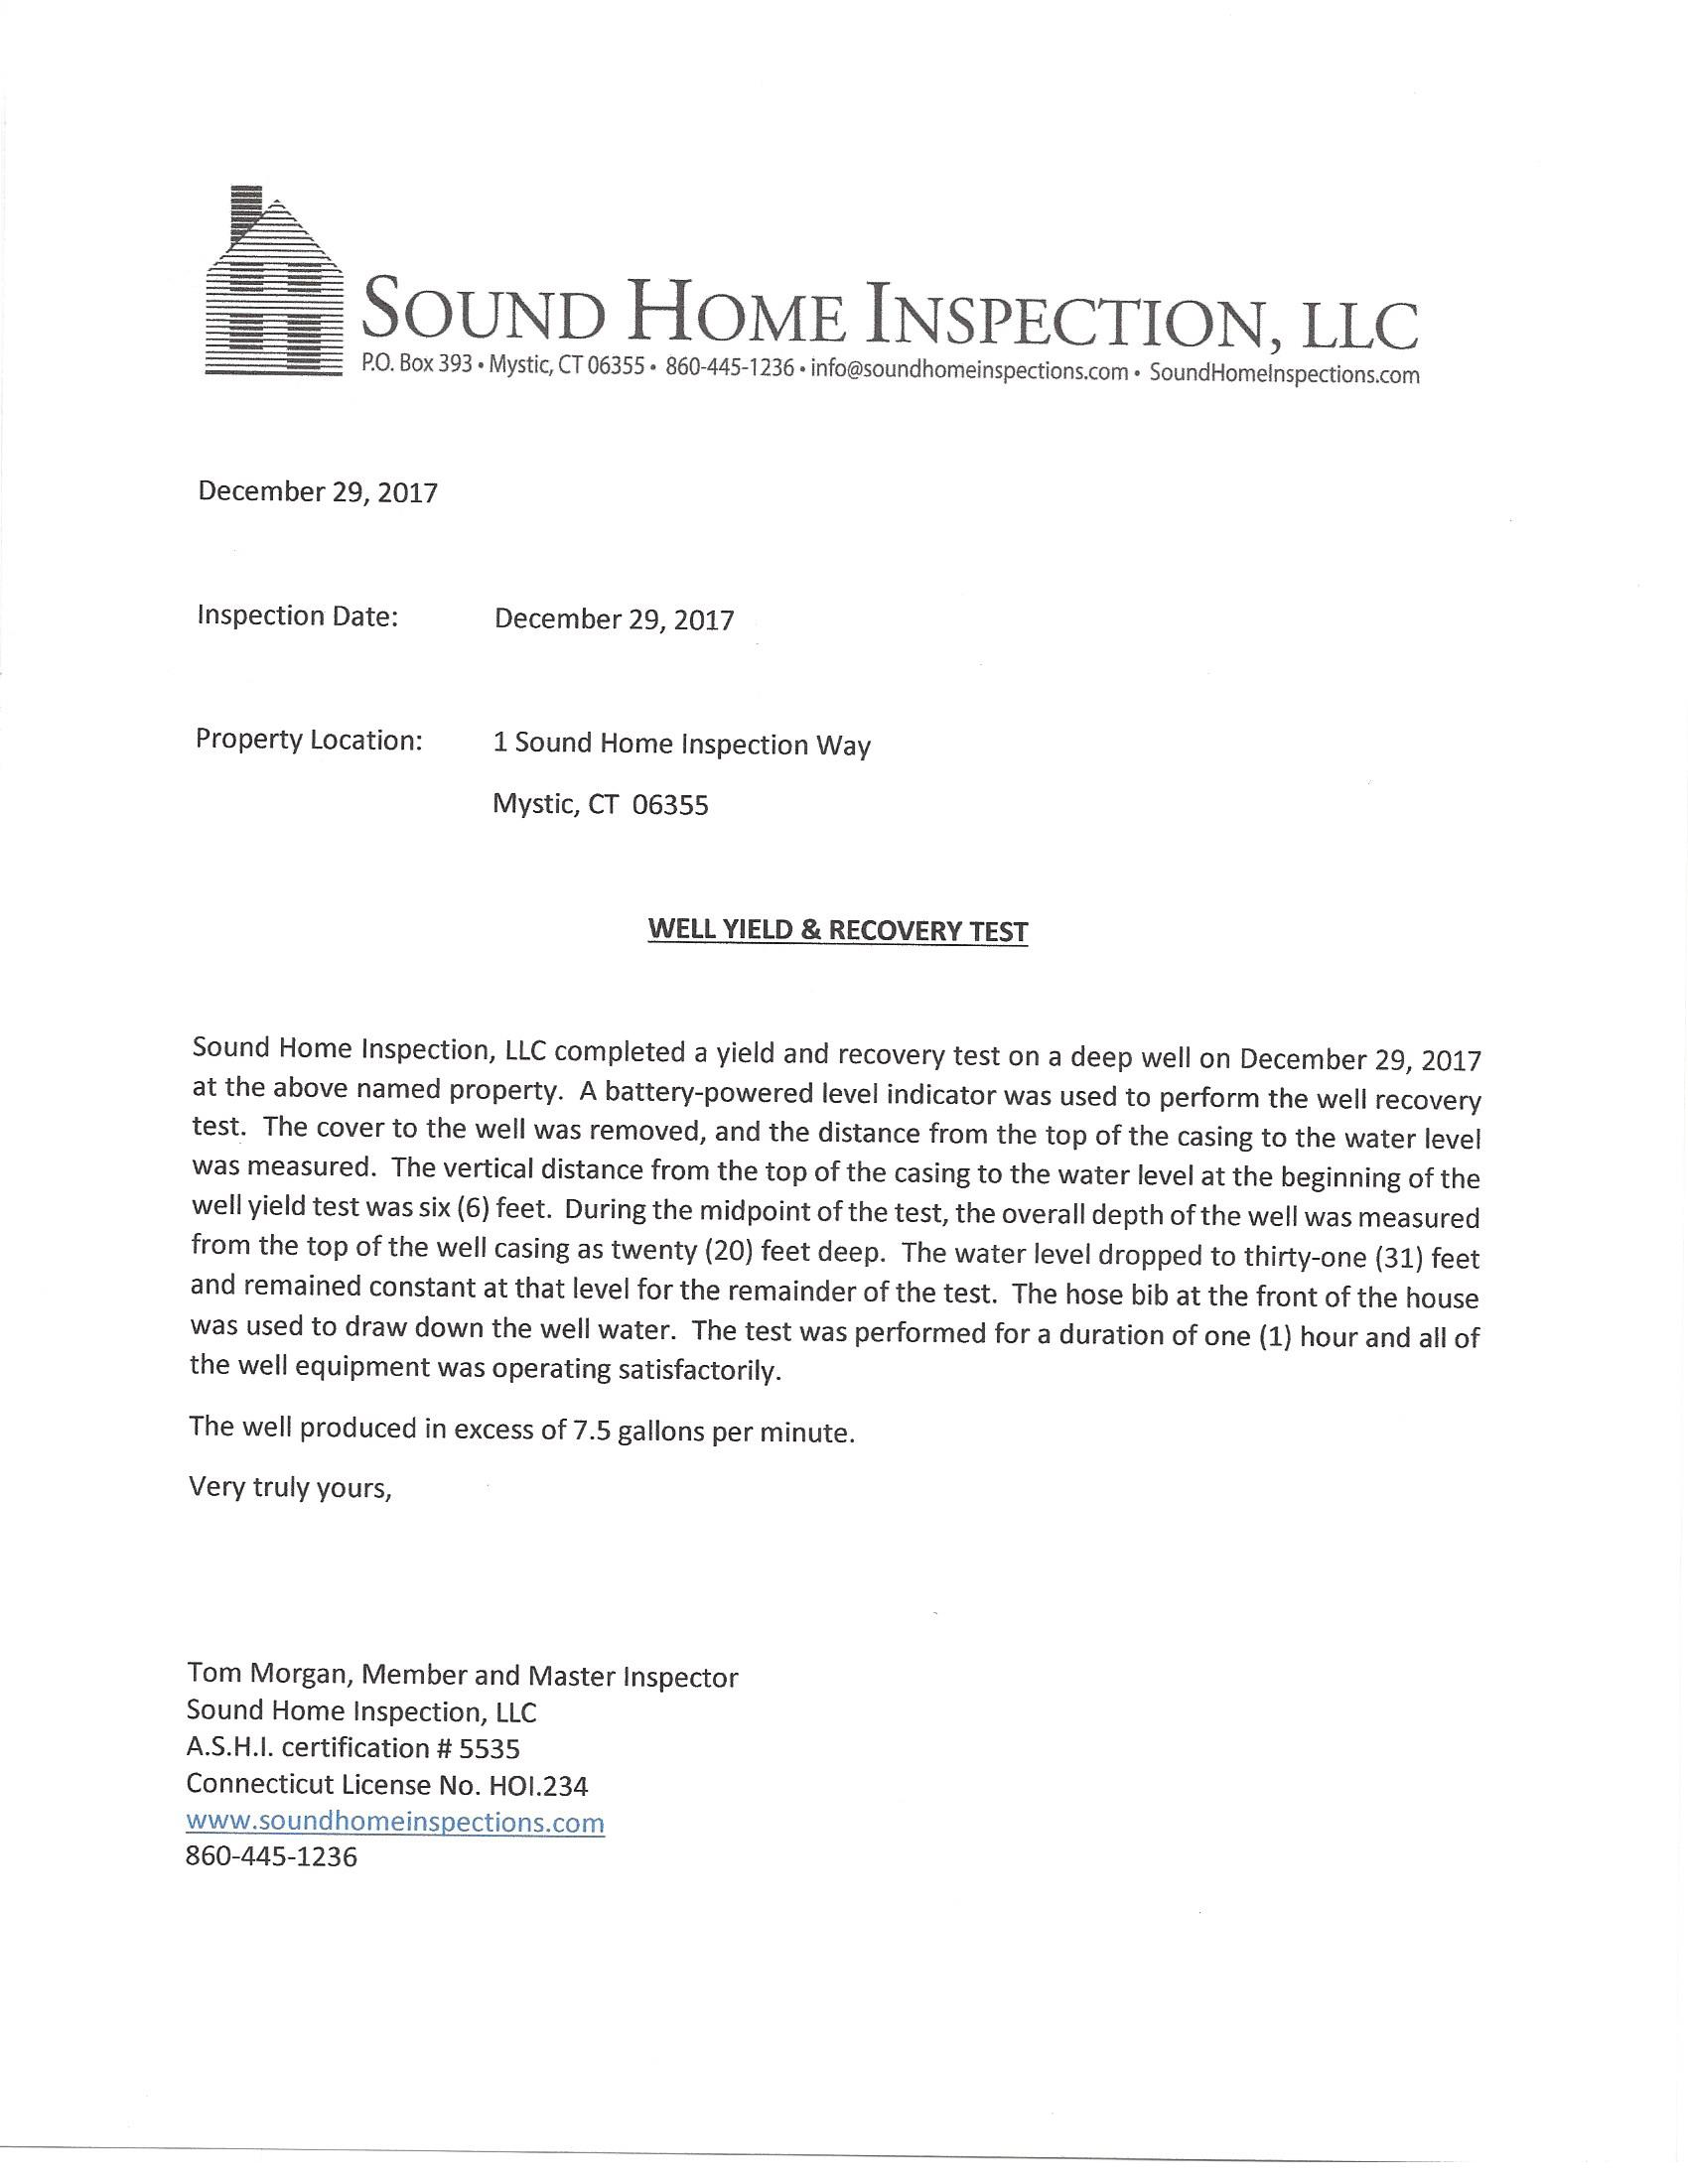 Sample Reports And Pictures | Sound Home Inspections, Inc. | Ct And Ri